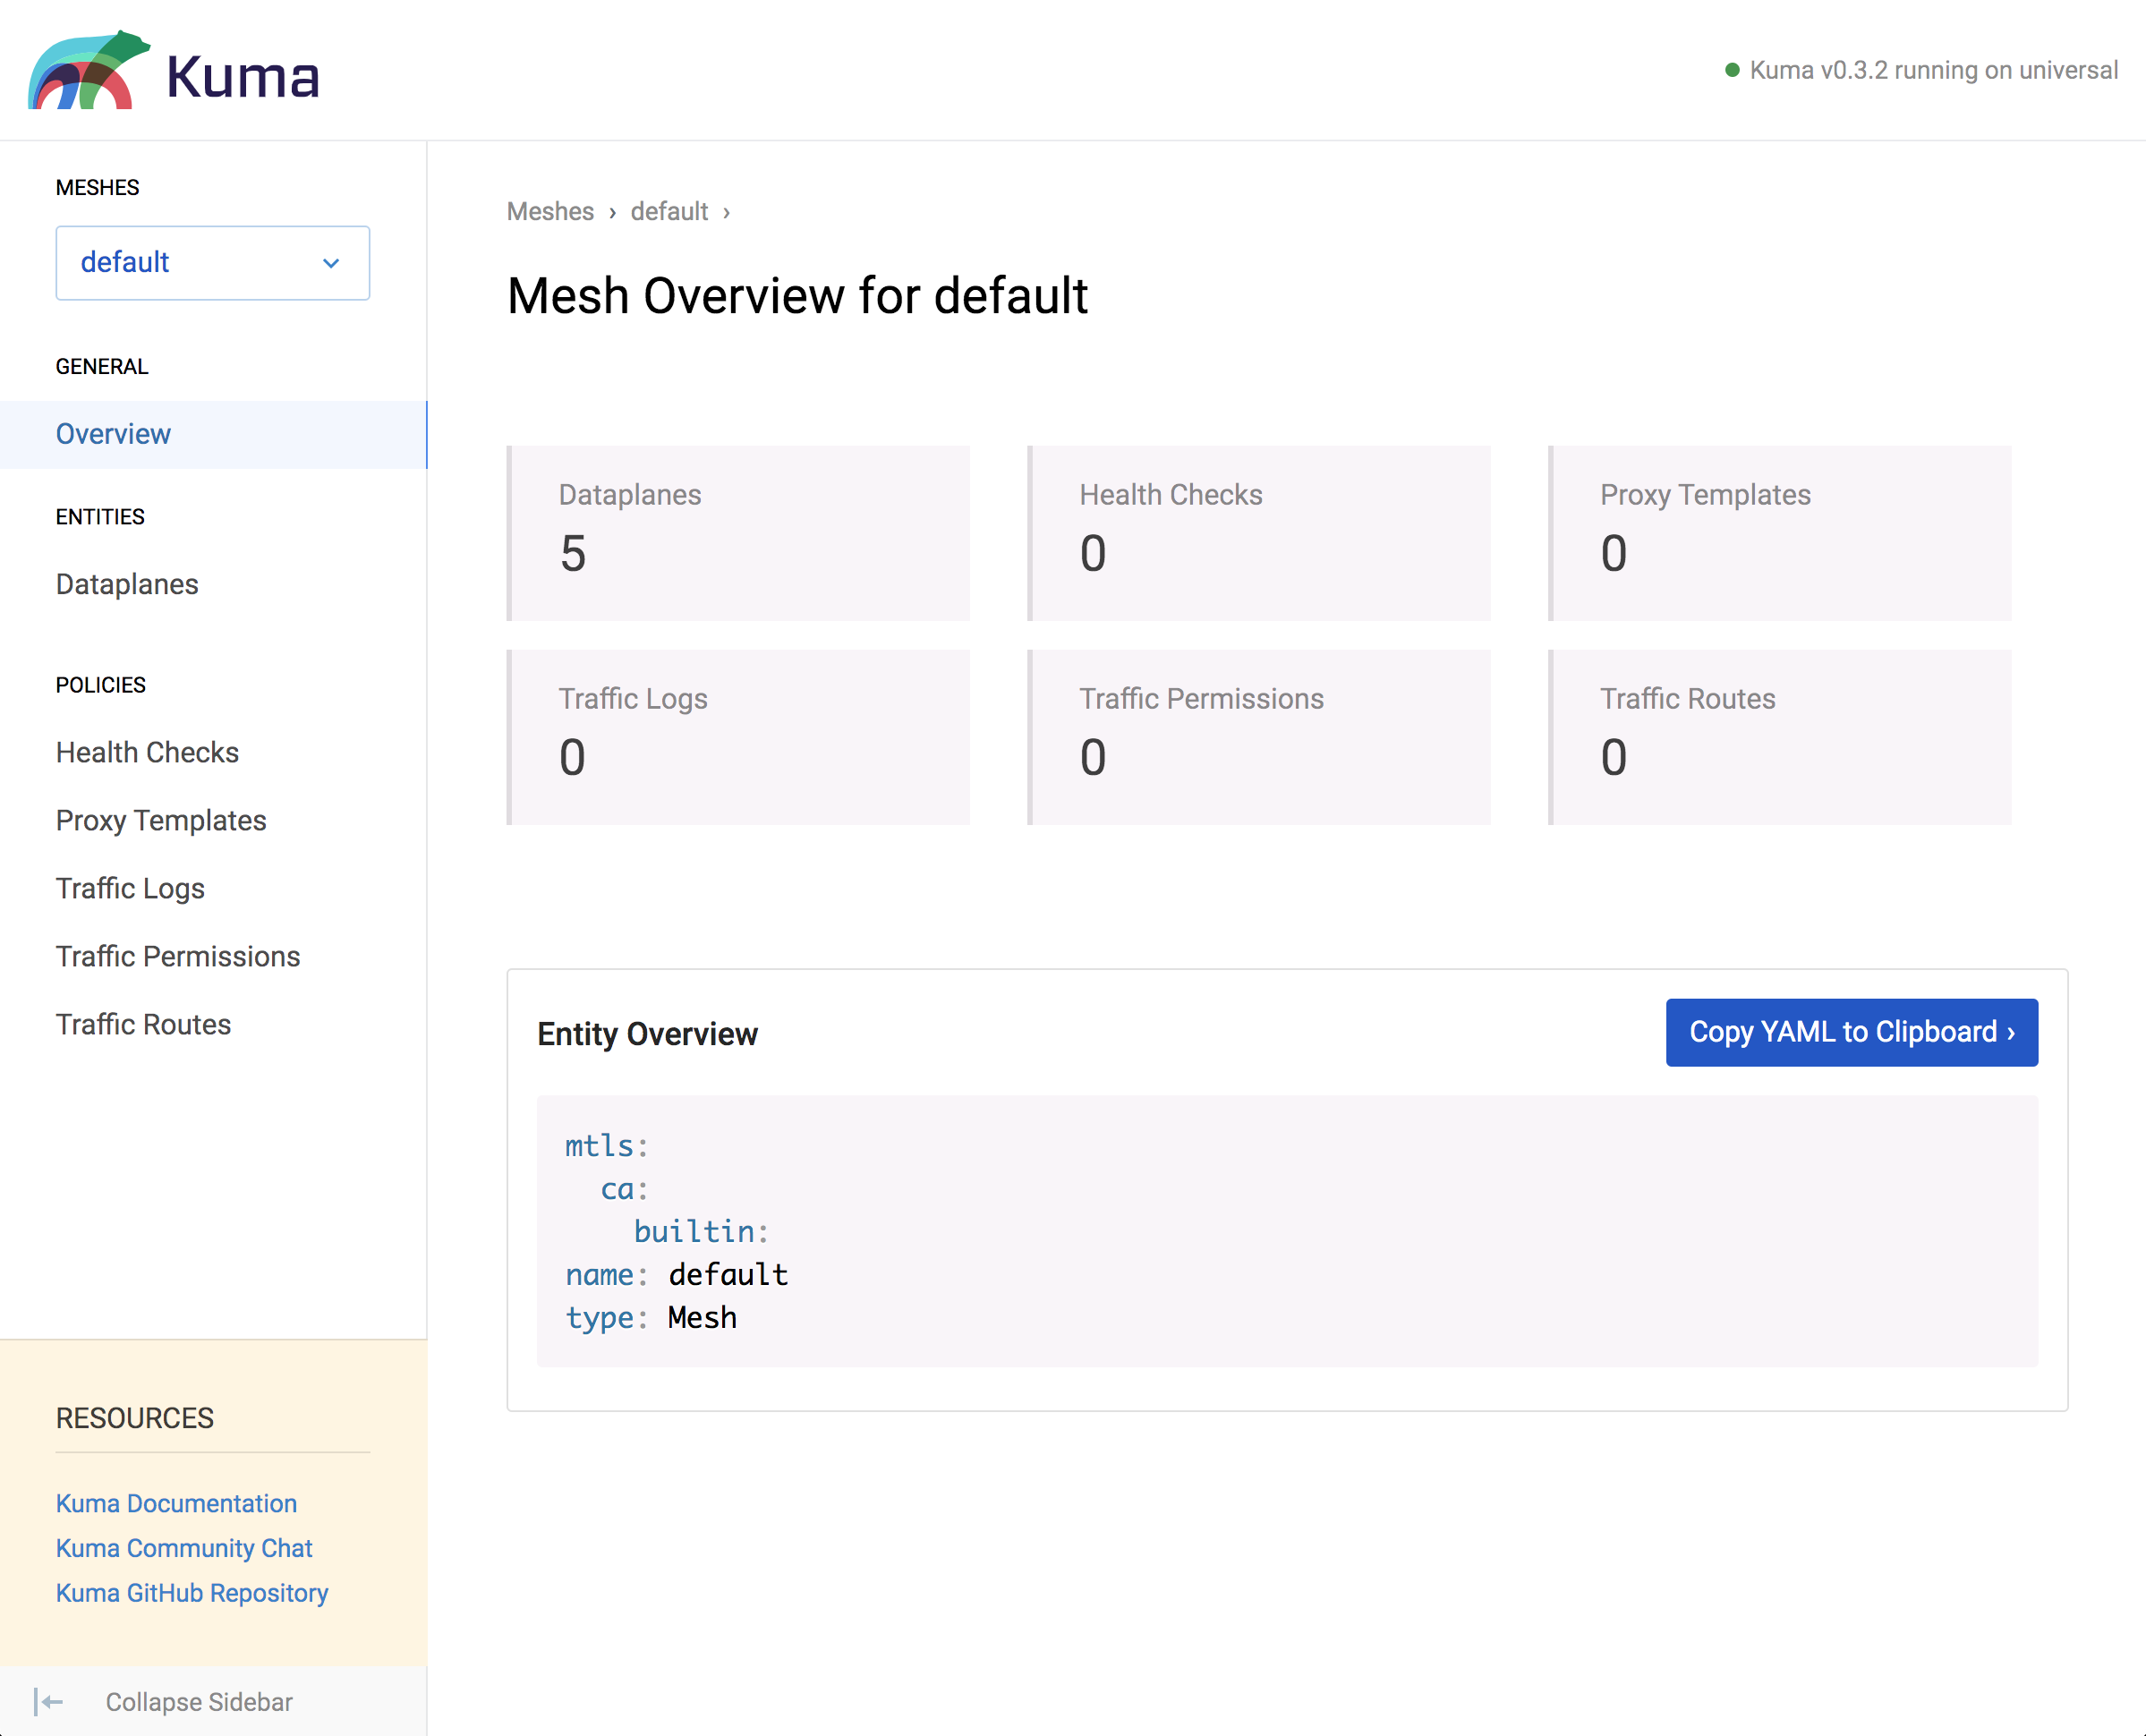 A screenshot of the Mesh Overview of the Kuma GUI